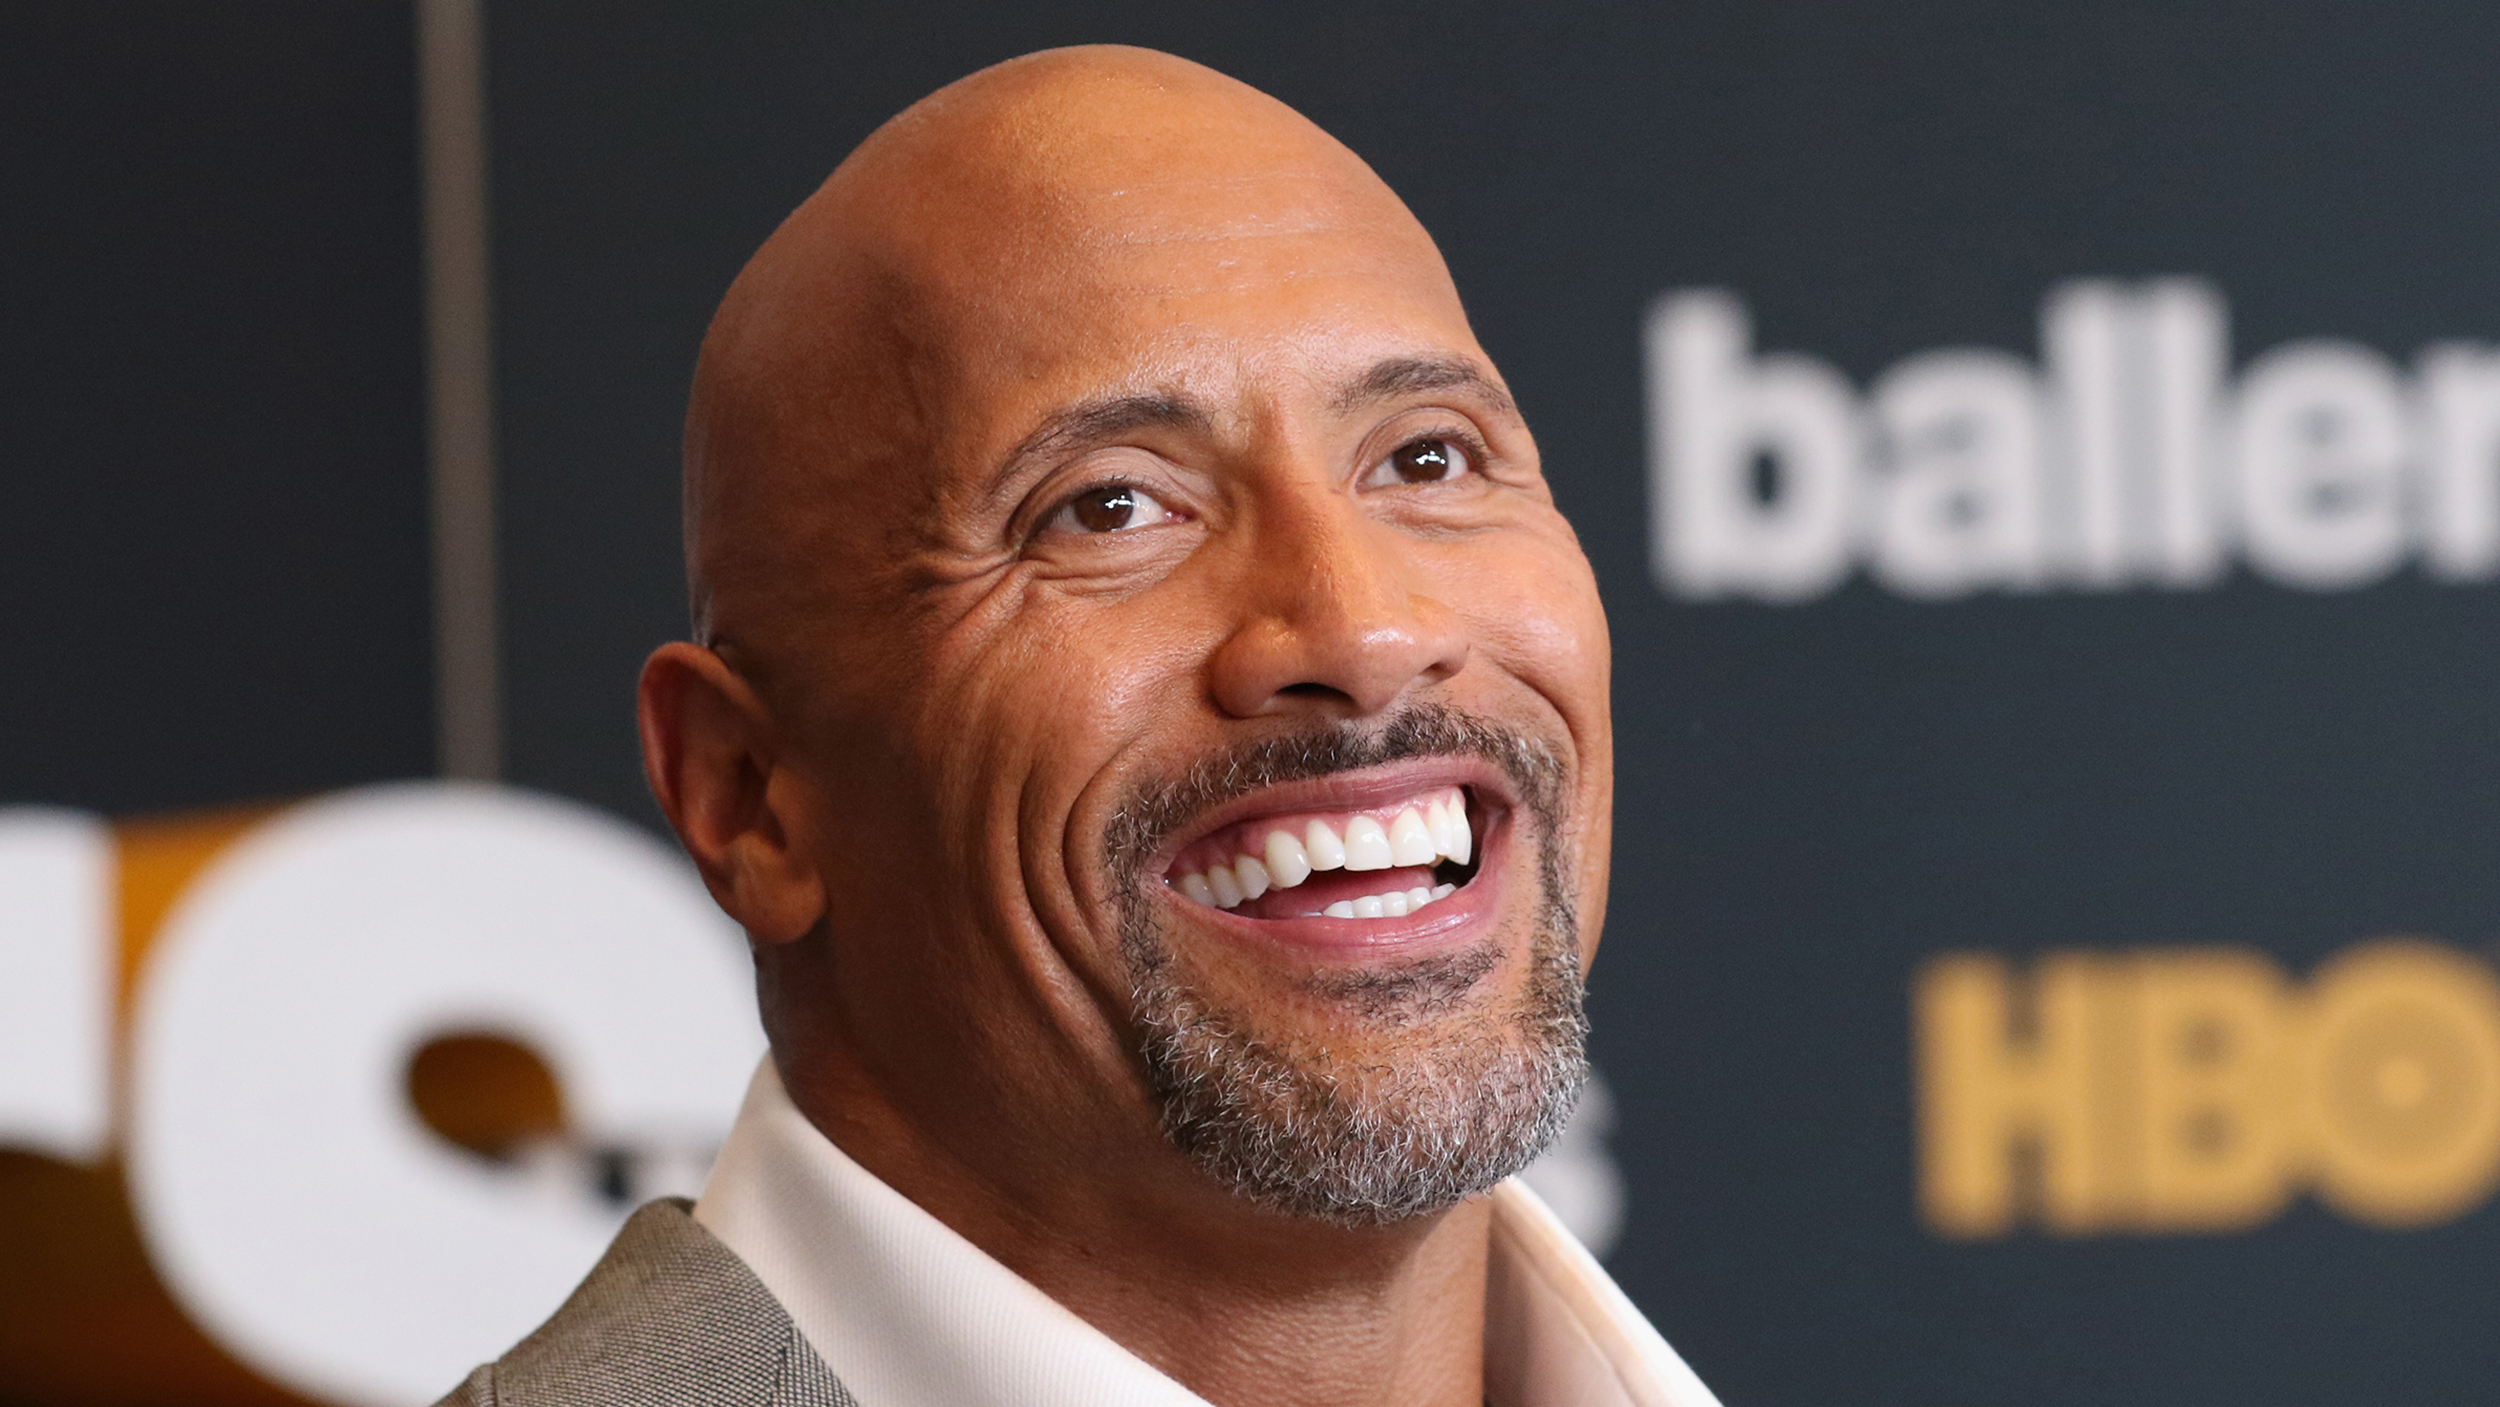 Dwayne 'The Rock' Johnson sings 'Happy Birthday' to 1-year-old daughter